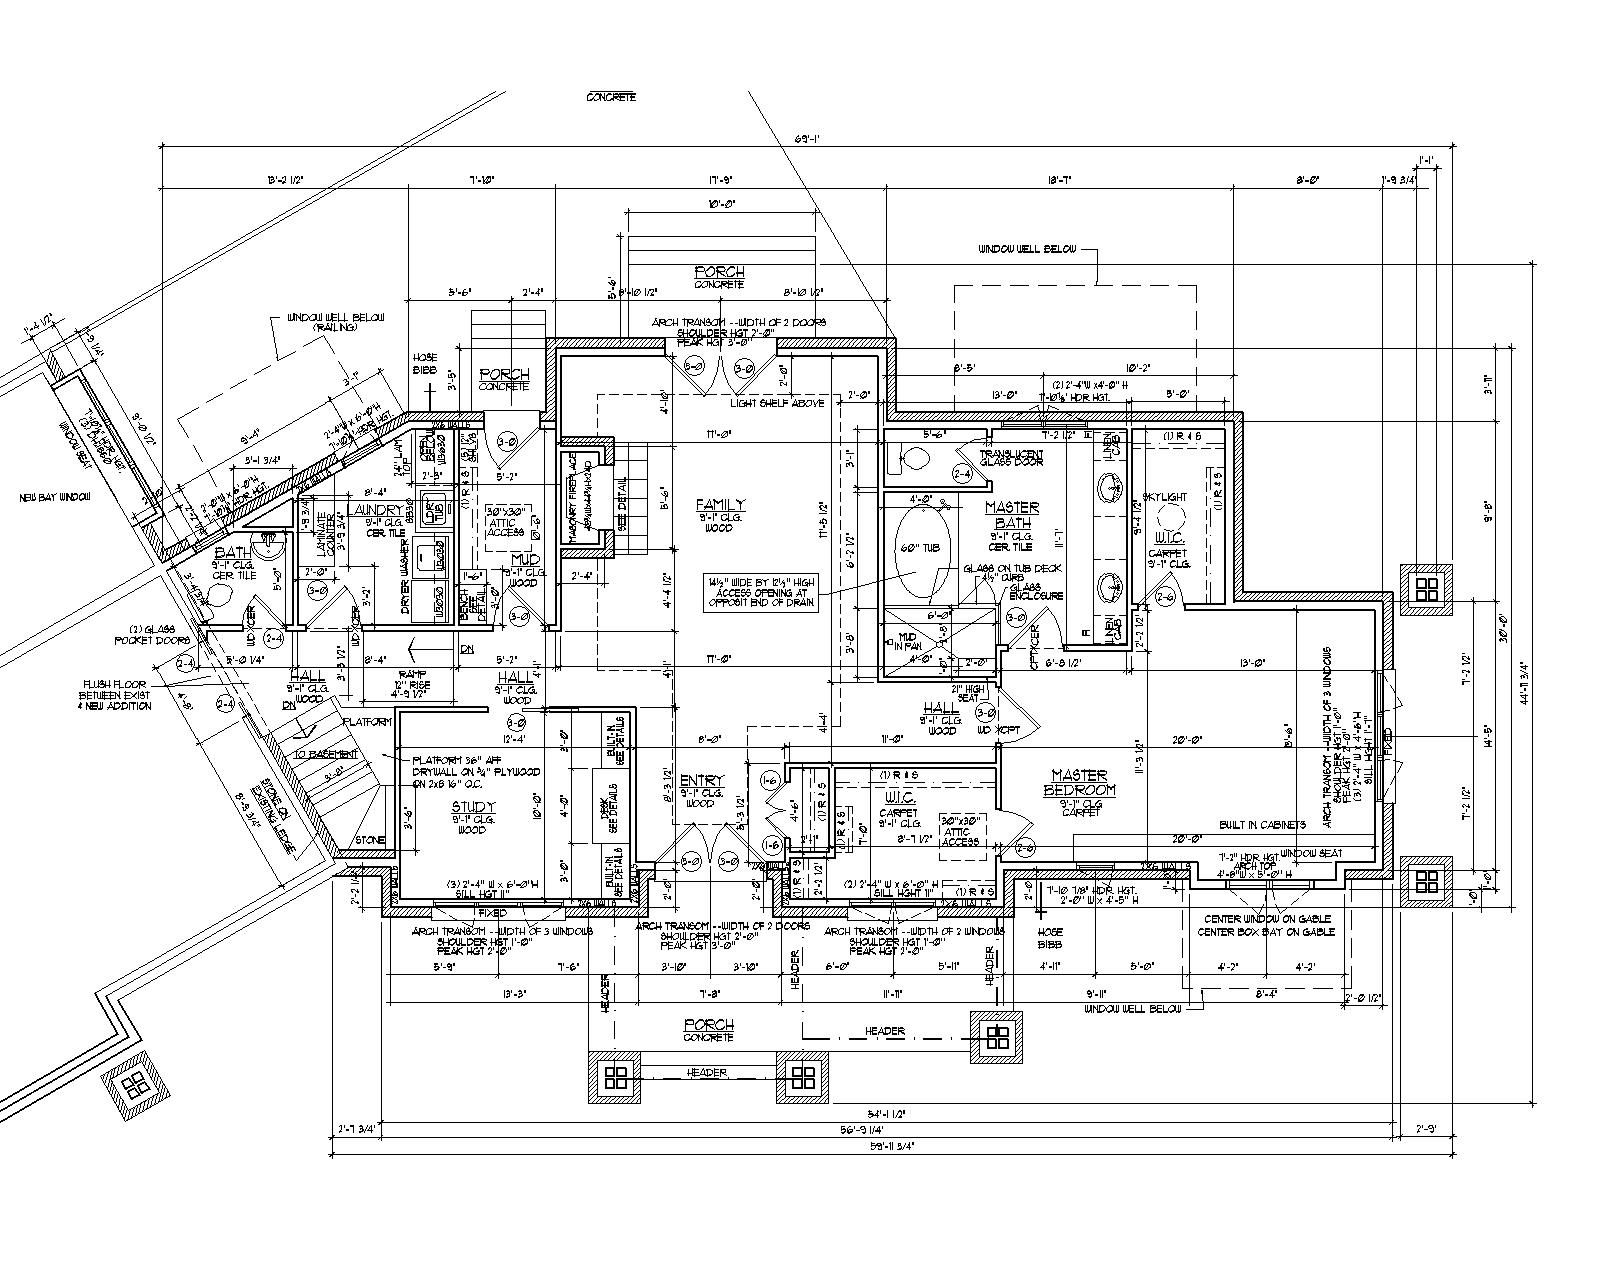 Stunning Drawing House Floor Plans 1600 x 1280 · 329 kB · jpeg